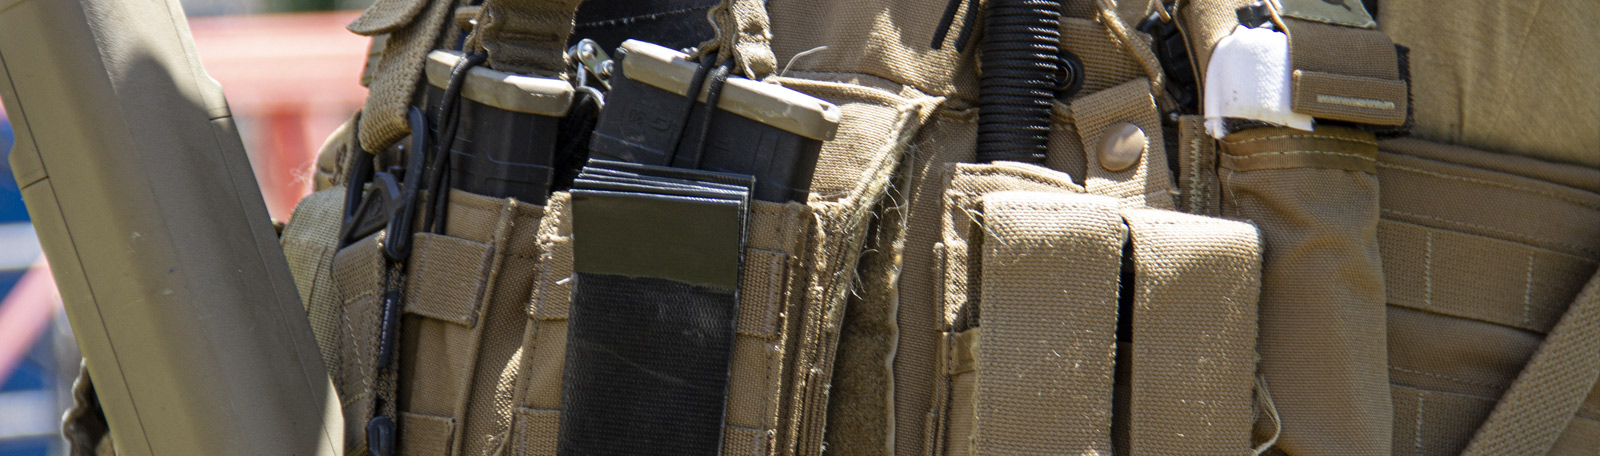 Gear - Mag Pouches Category